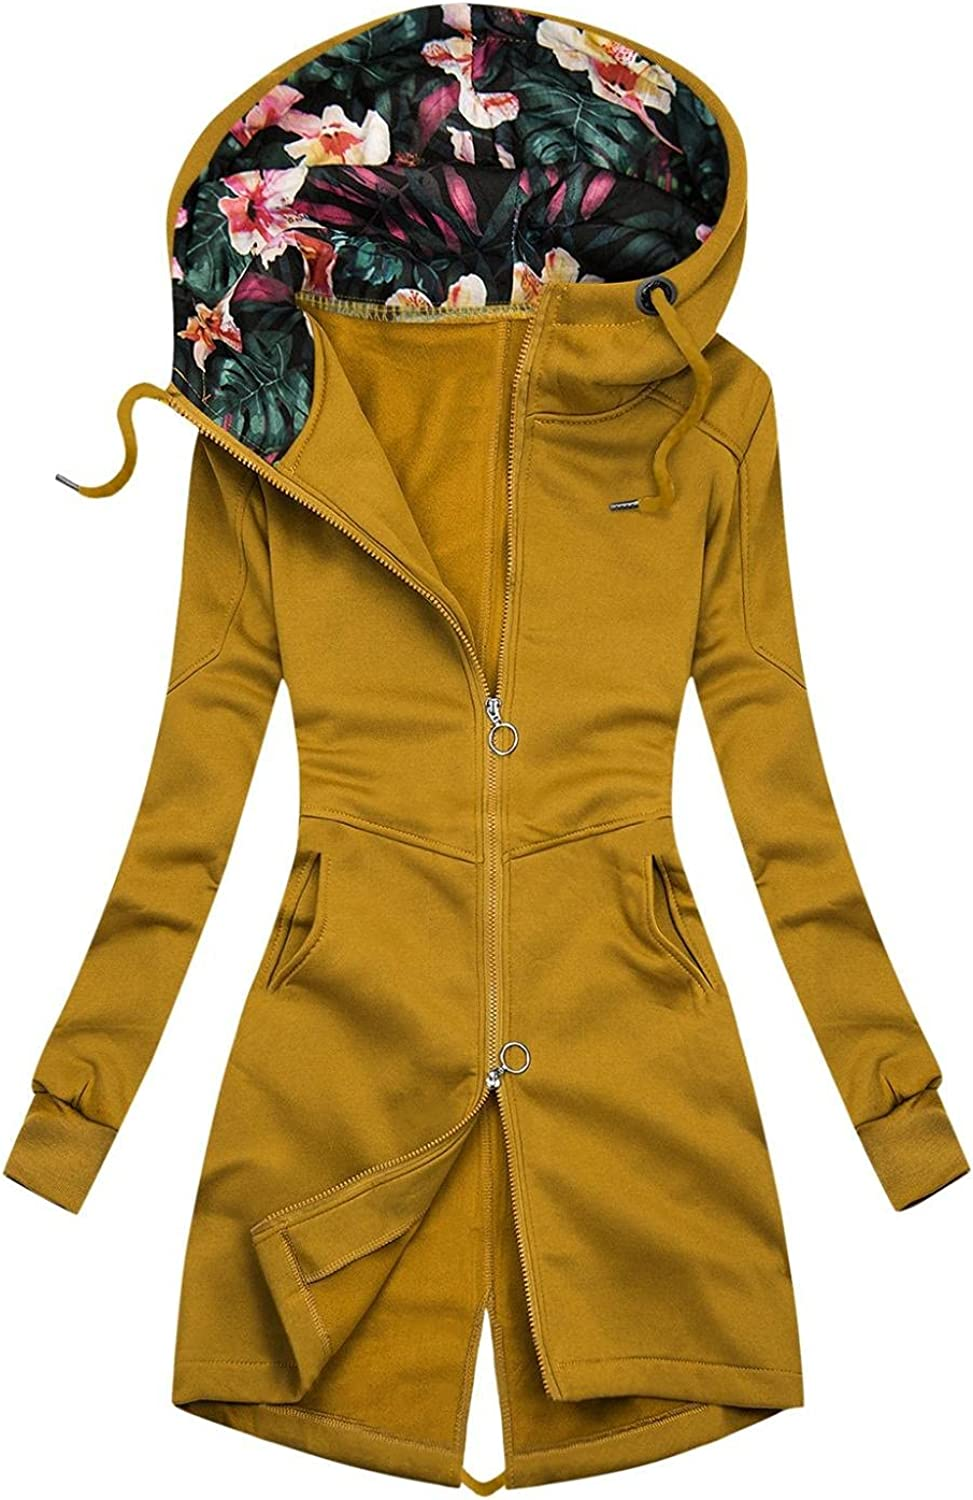 Changeshopping Womens Hooded Coat Autumn Winter Fashion Print Hooded Solid Color Turtleneck Zipper Jacket with Pockets